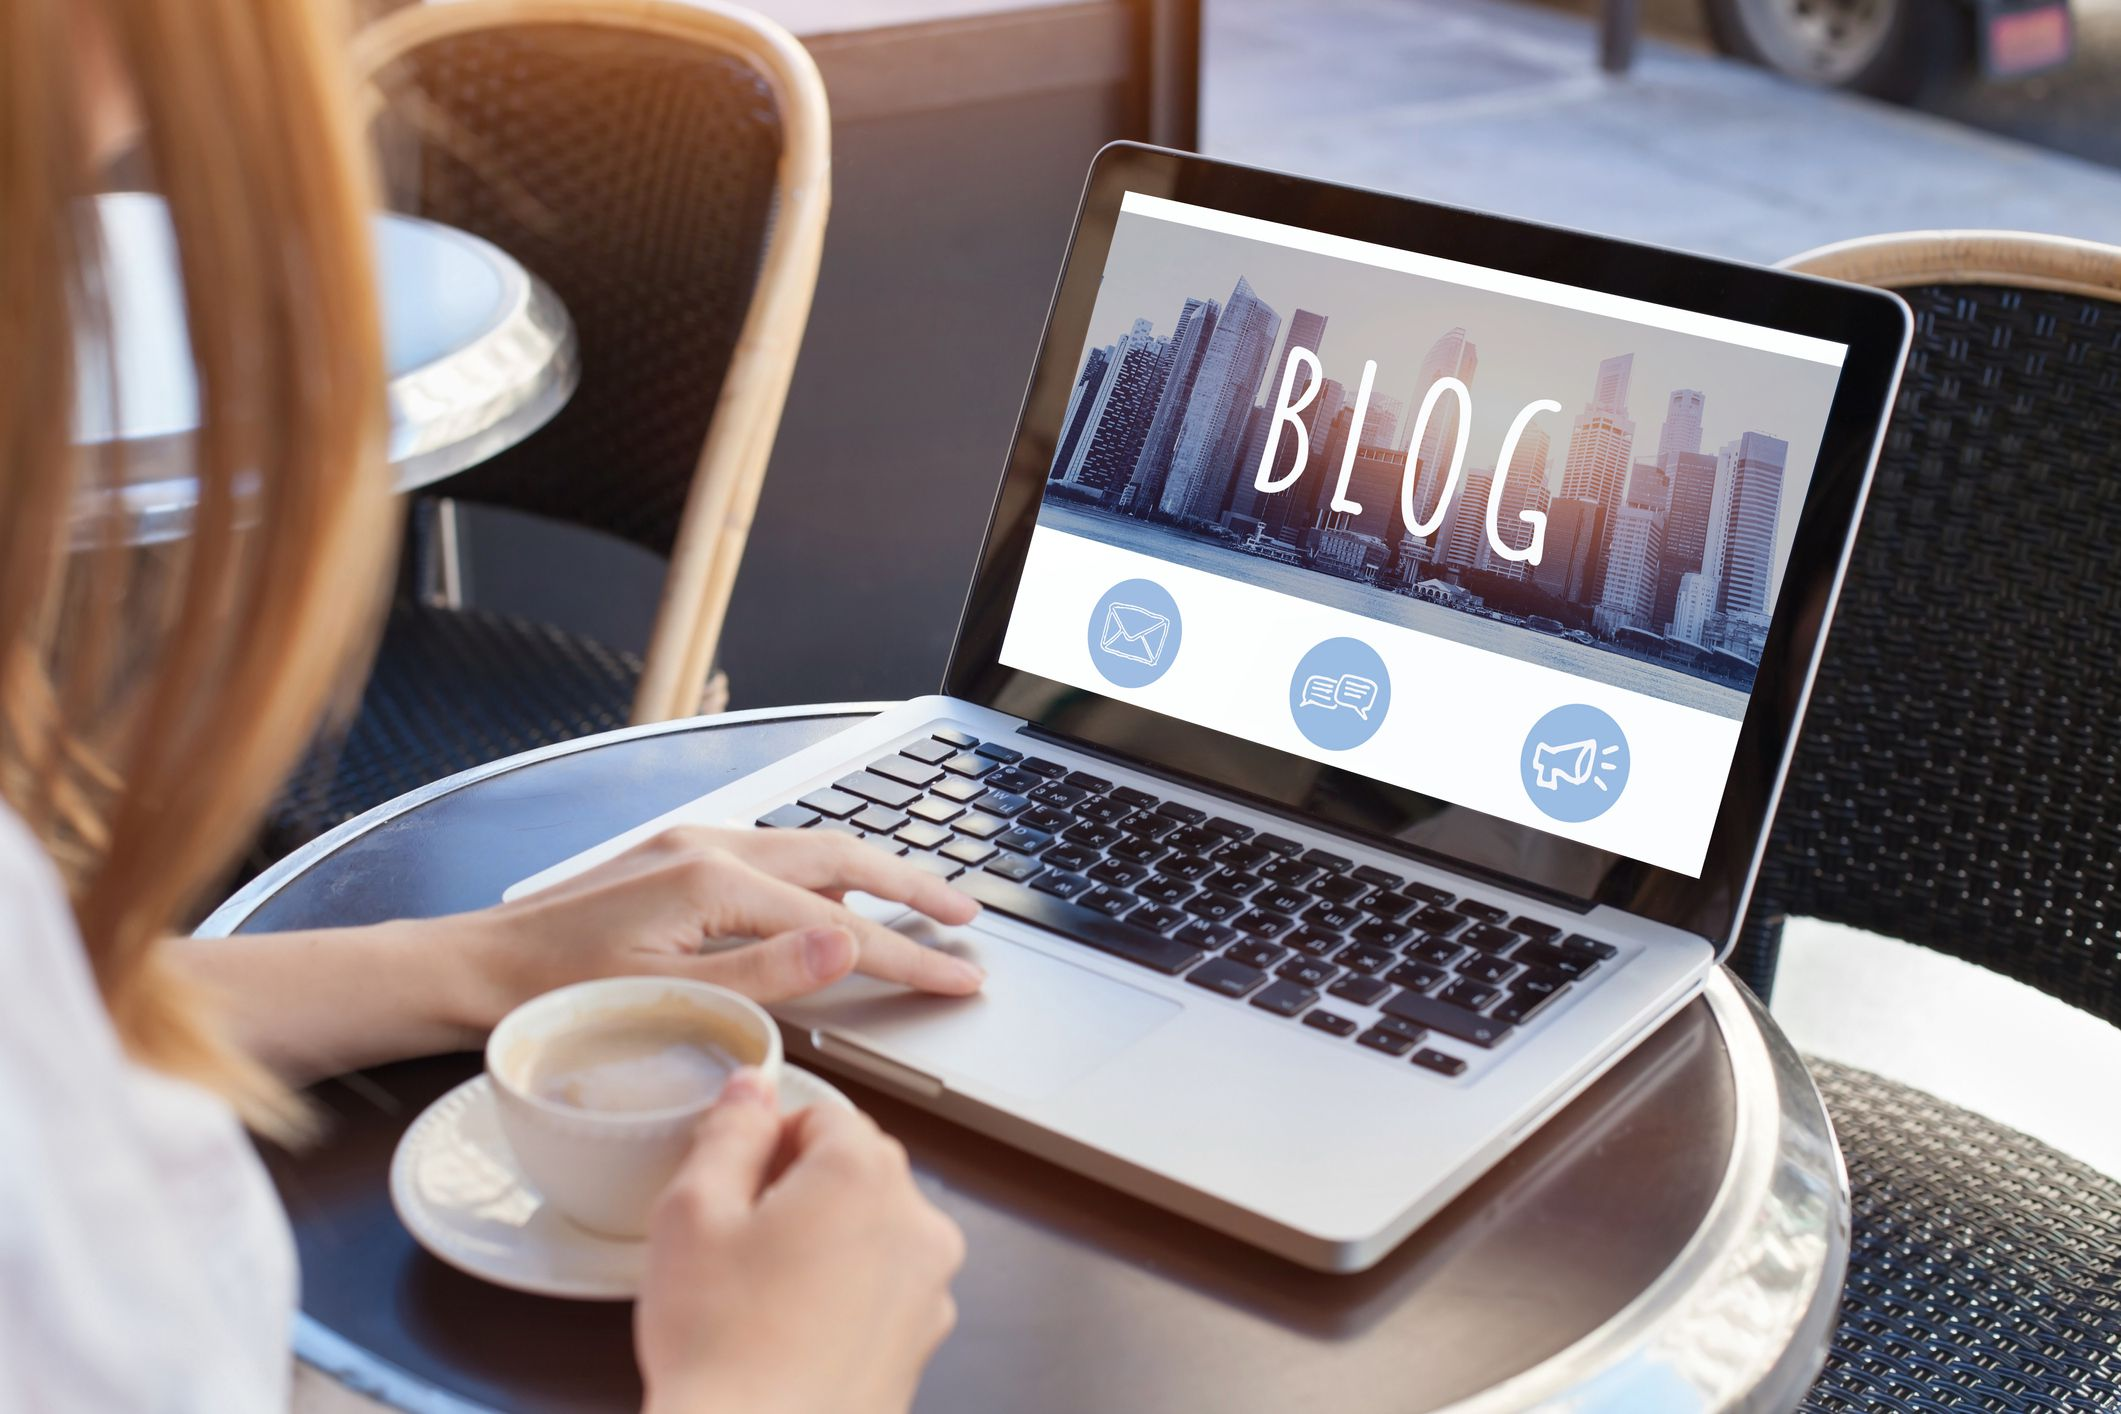 5 Ways to Curate Content on Your Blog